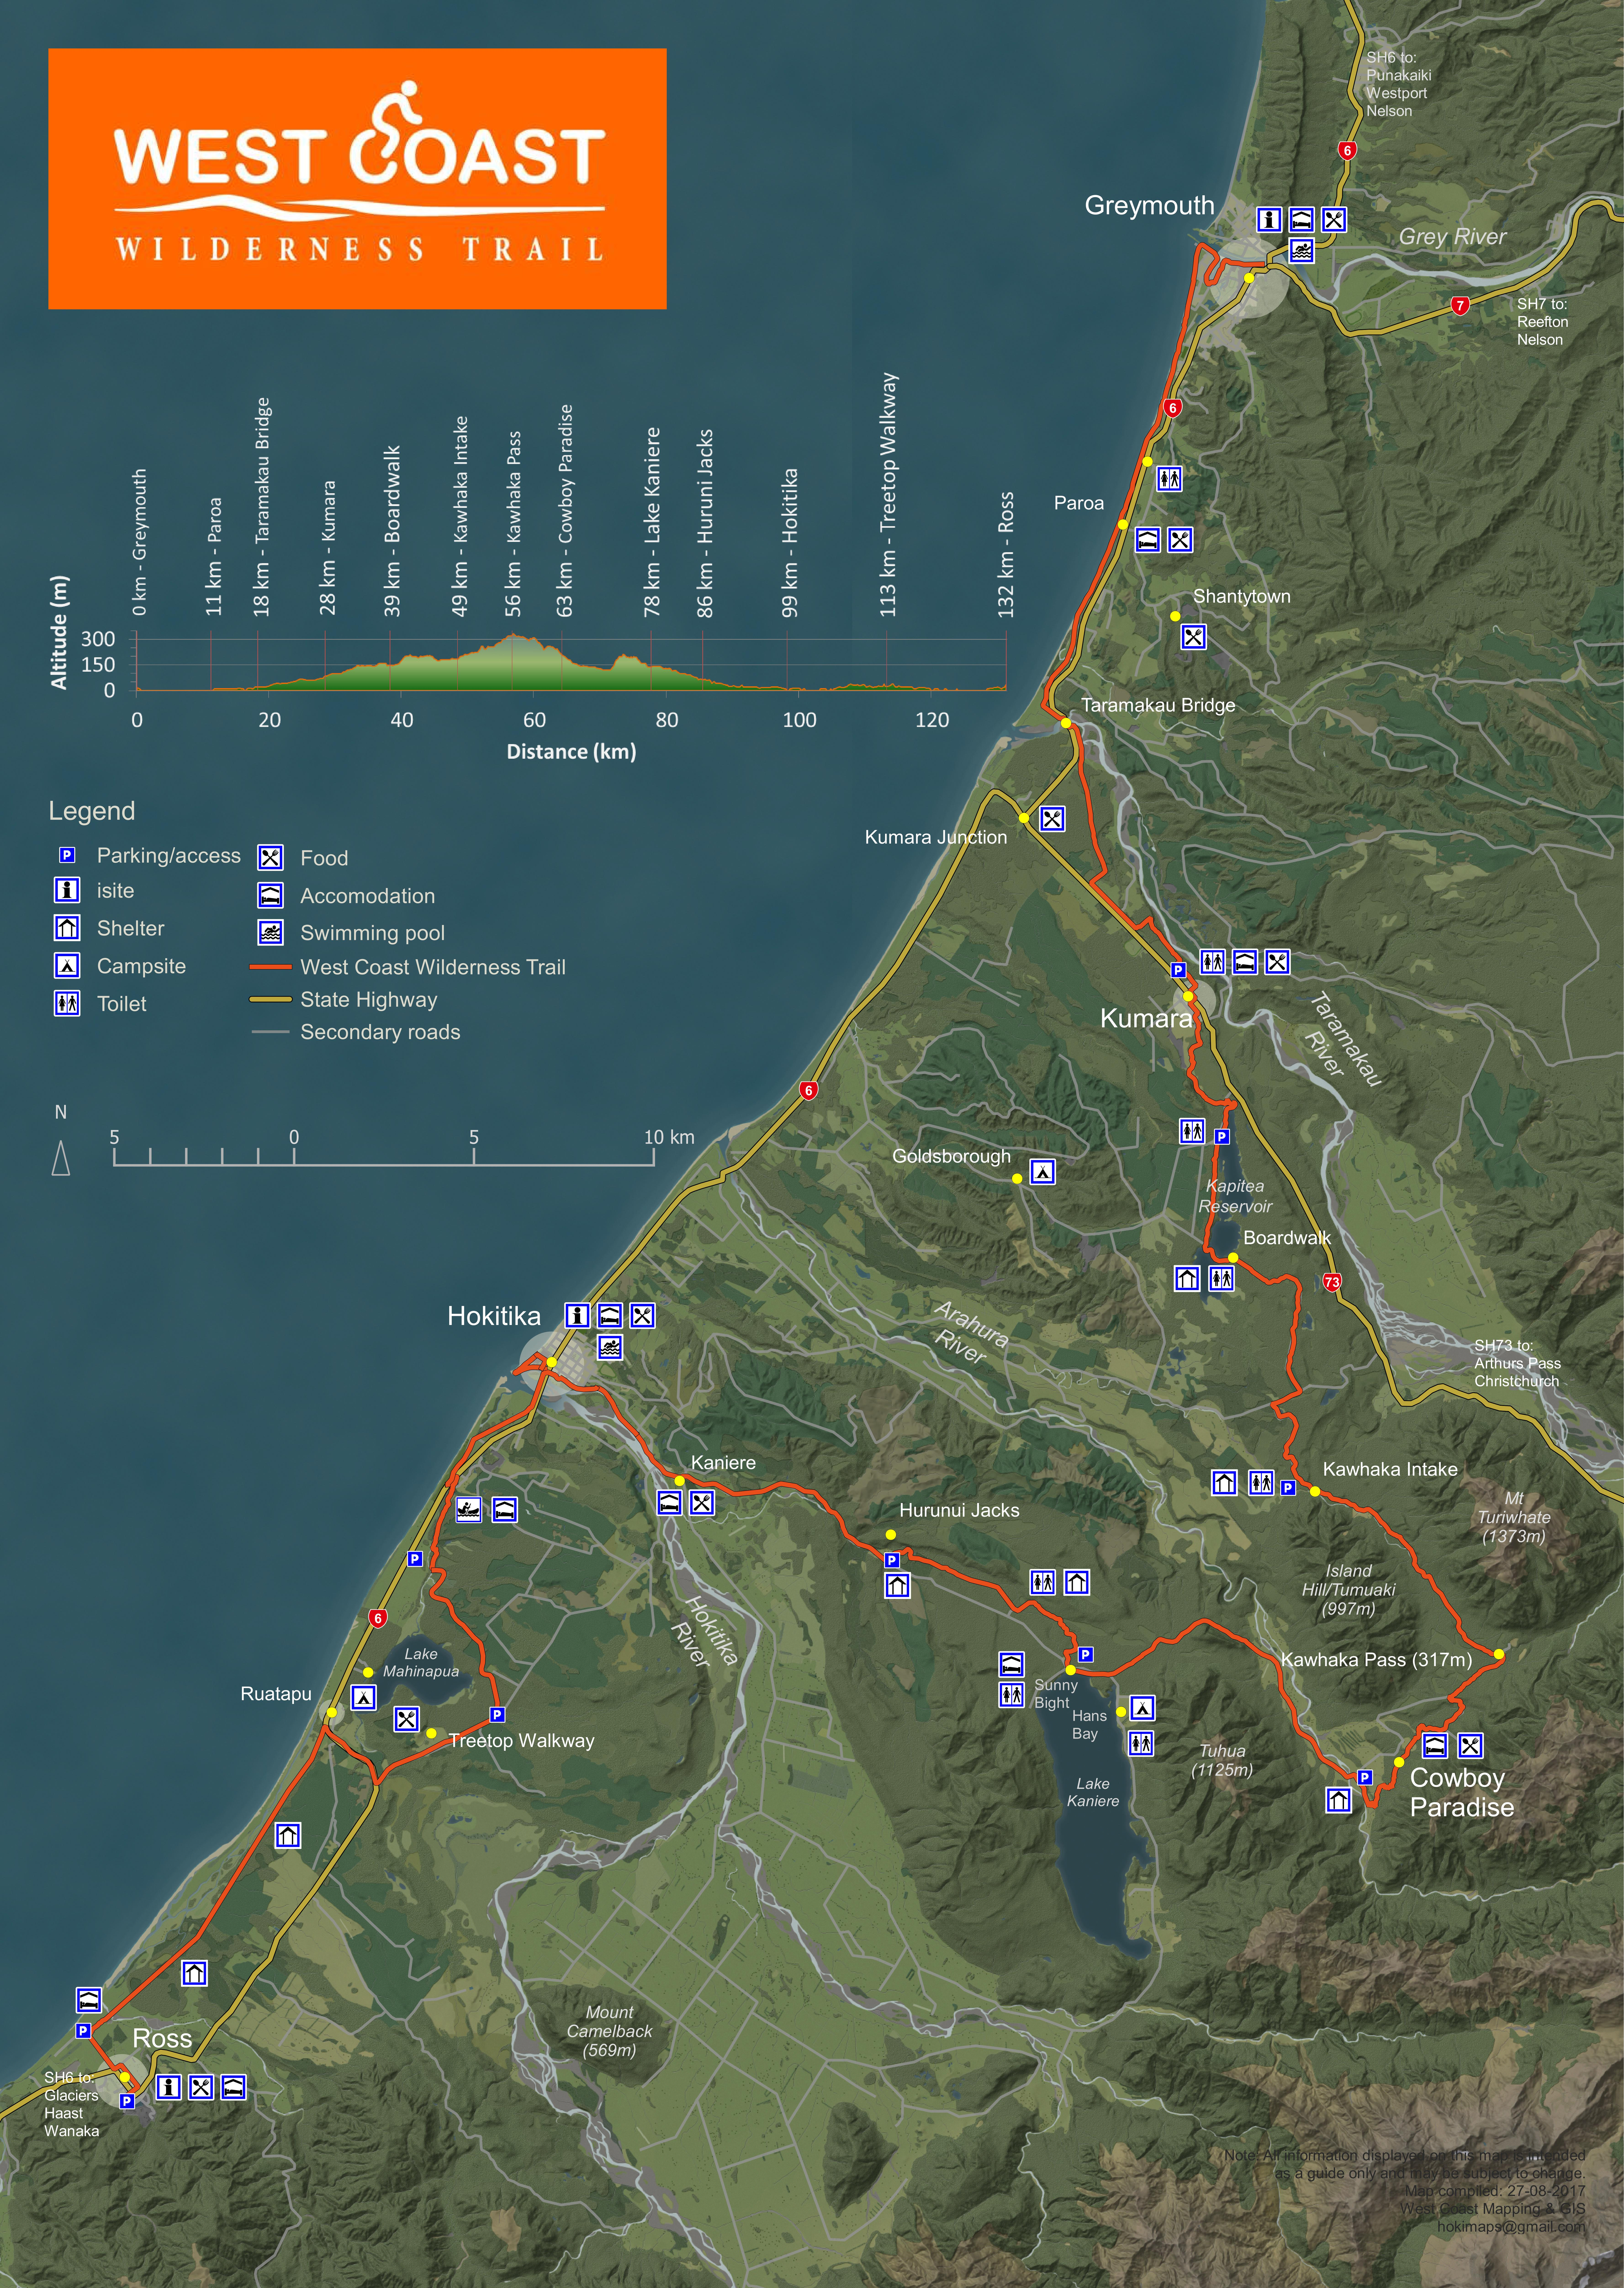 Hokitika New Zealand Map.West Coast Wilderness Trail Trail Overview Map